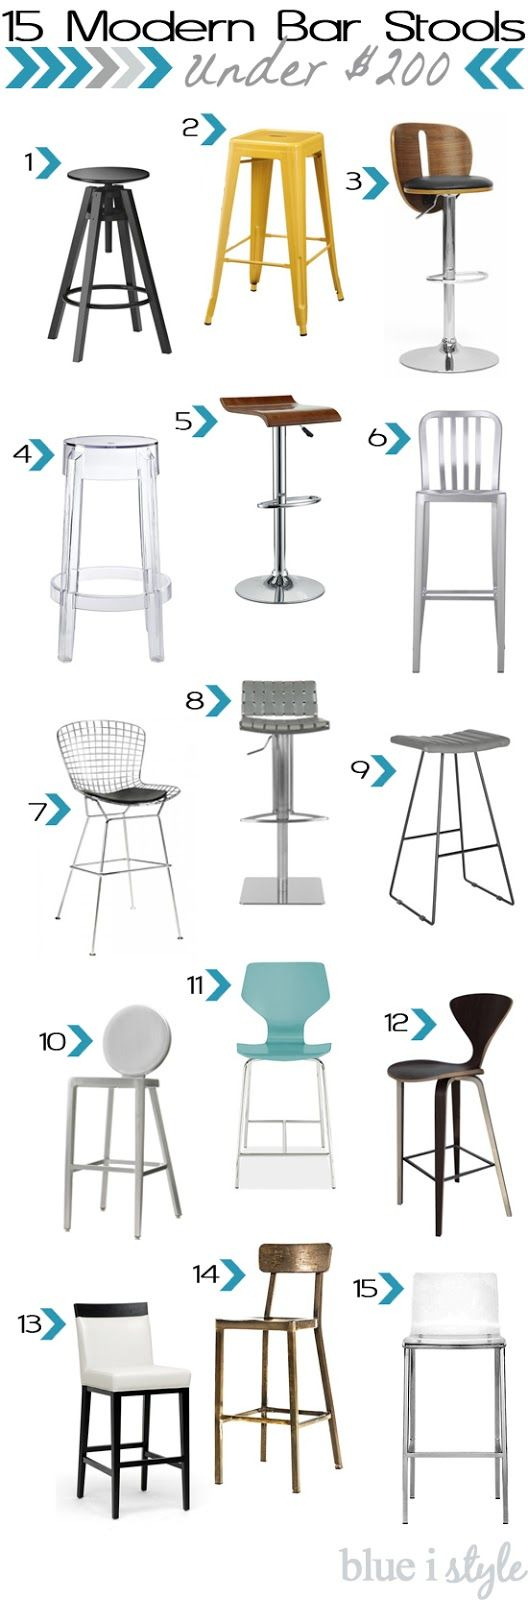 Shopping For Style} 15 Modern Bar Stools Under $200 & The Within Weir Garden Stools (View 17 of 25)